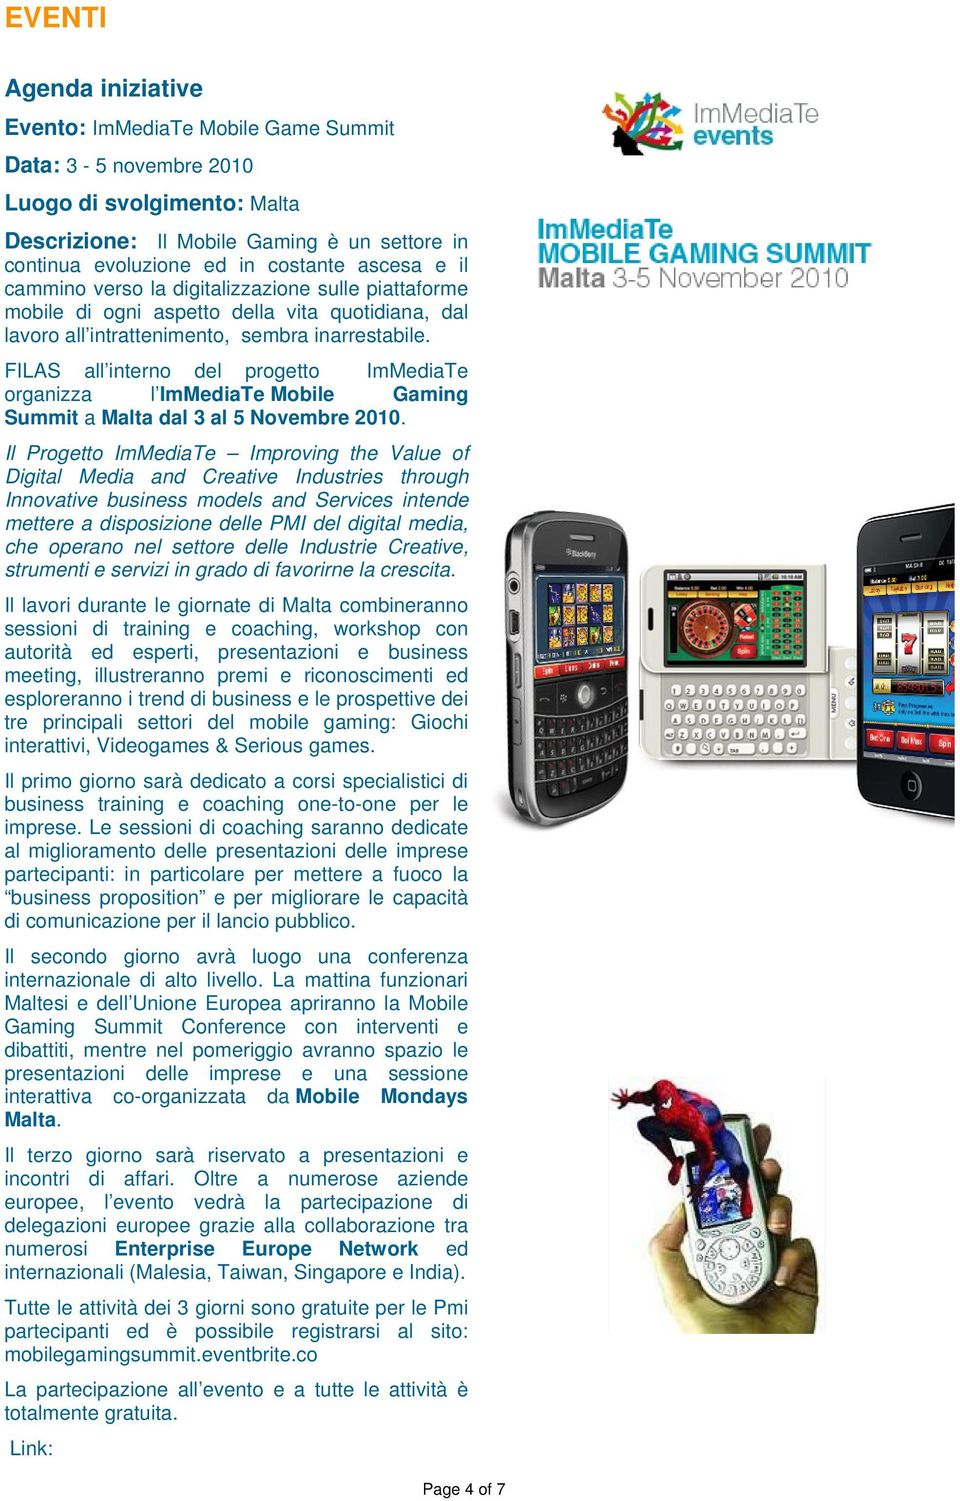 FILAS all interno del progetto ImMediaTe organizza l ImMediaTe Mobile Gaming Summit a Malta dal 3 al 5 Novembre 2010.